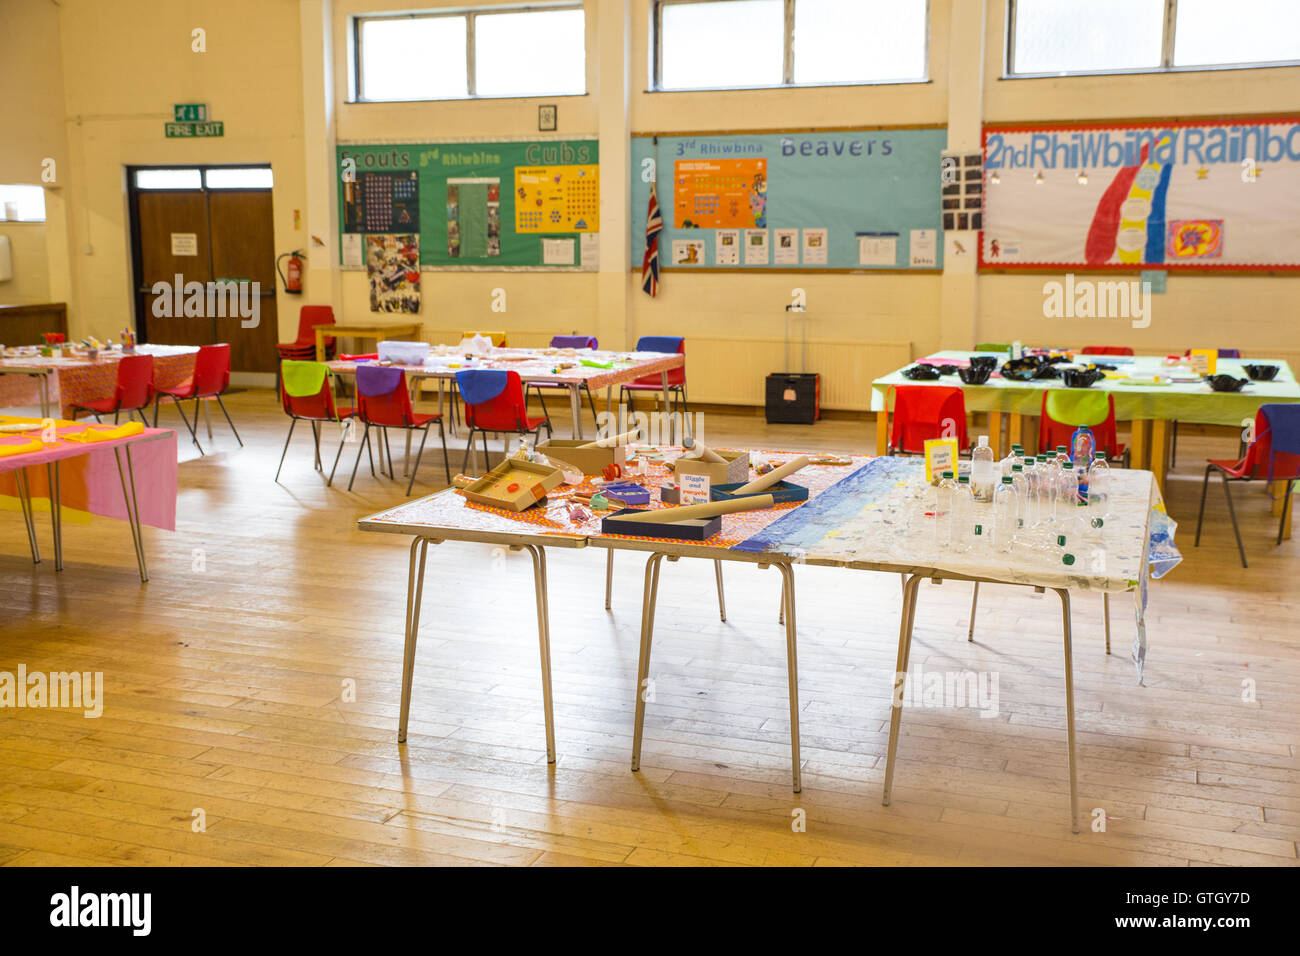 Interior of a church hall set up for activites with tables and chairs. - Stock Image